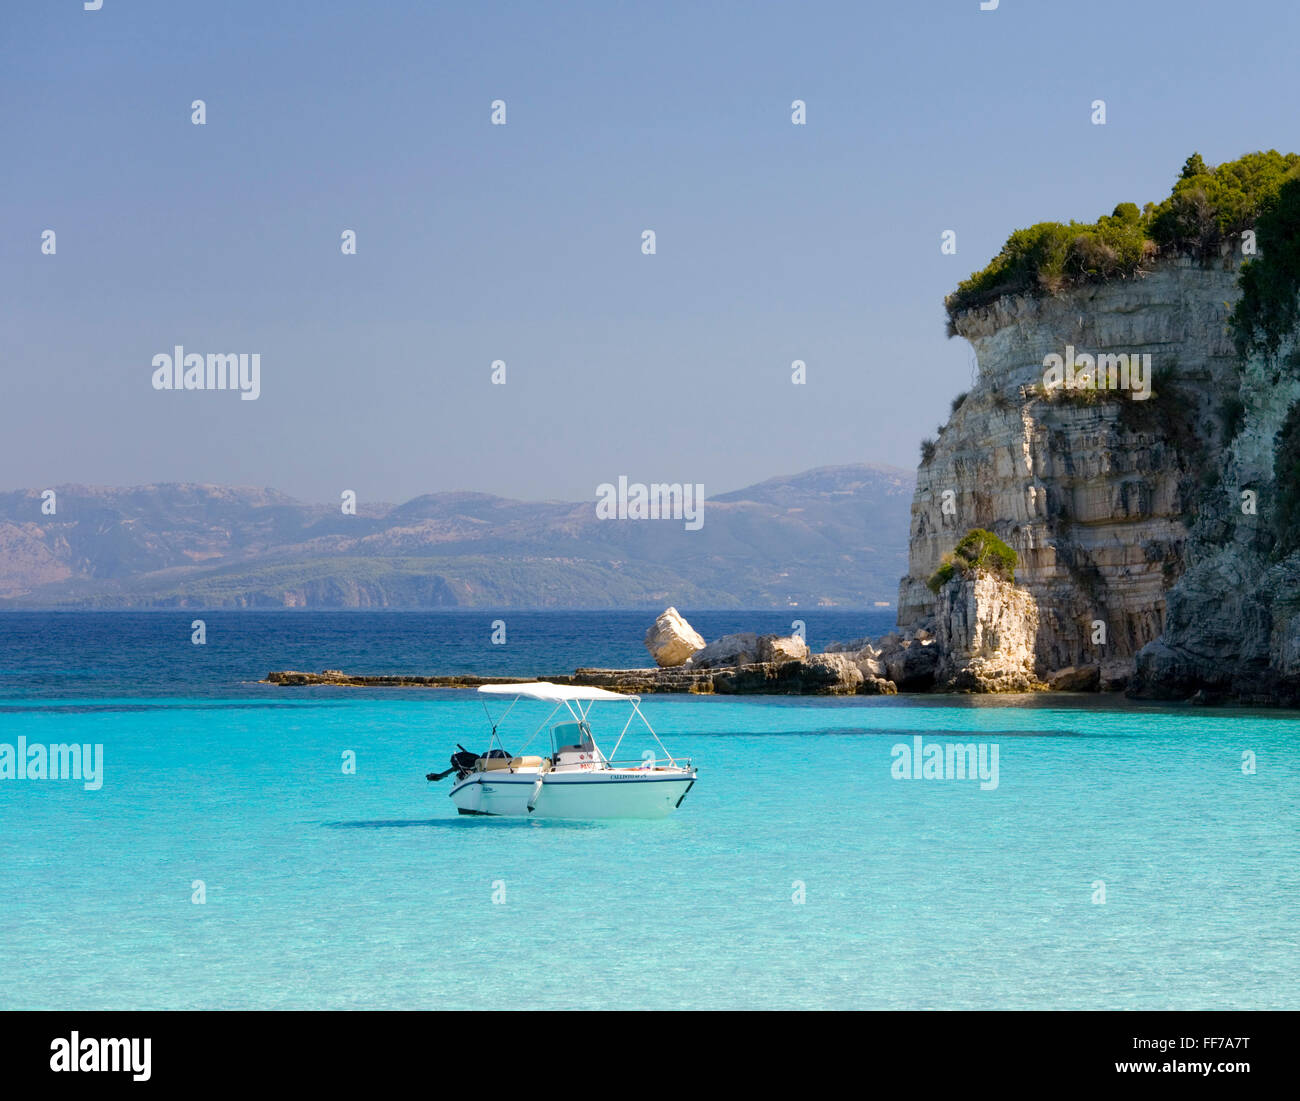 Antipaxos, Ionian Islands, Greece. View across secluded Voutoumi Bay, solitary boat at anchor. - Stock Image